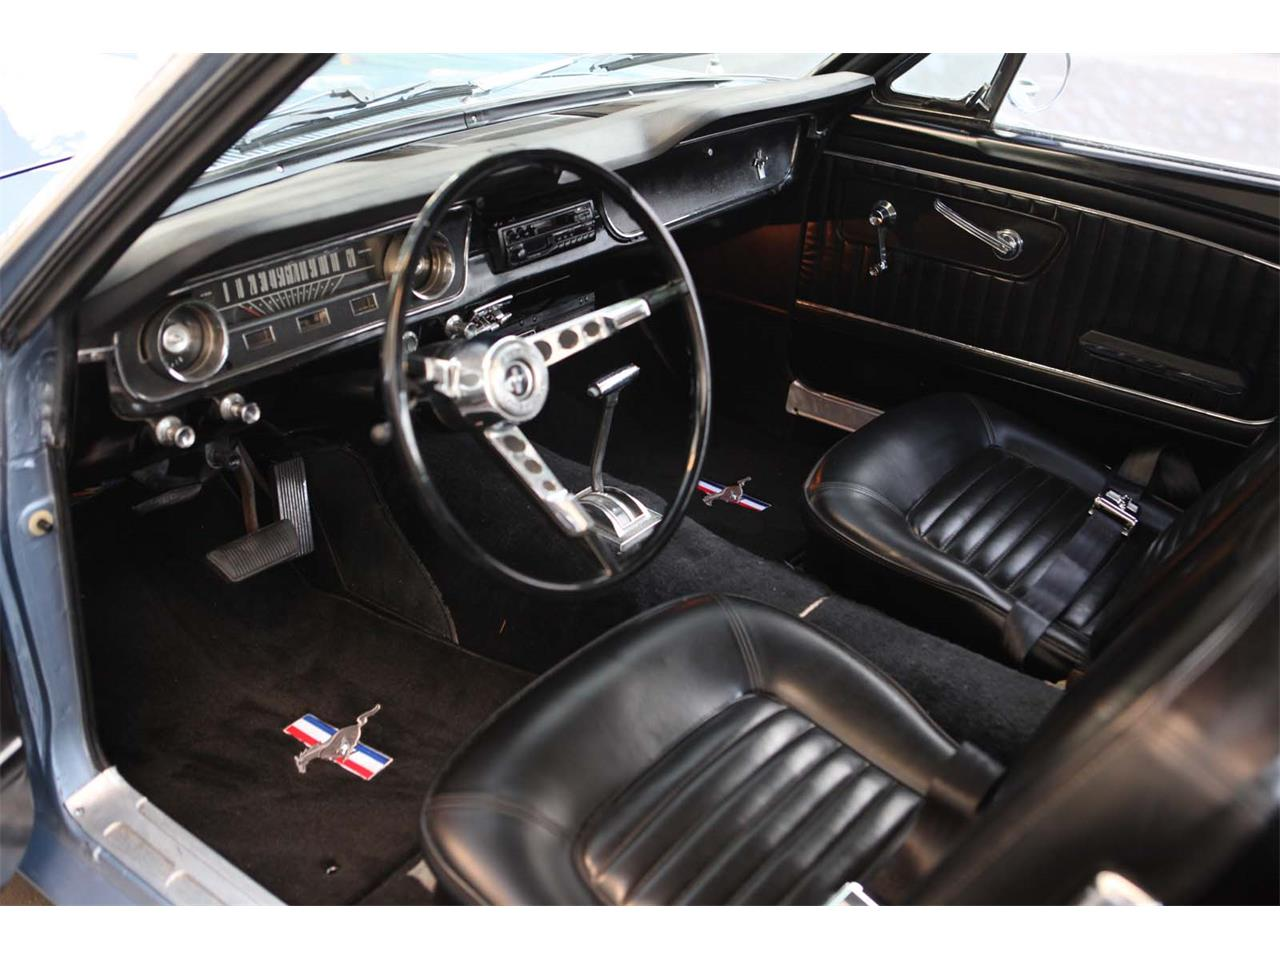 1965 Ford Mustang (CC-1419243) for sale in Sherman Oaks, California